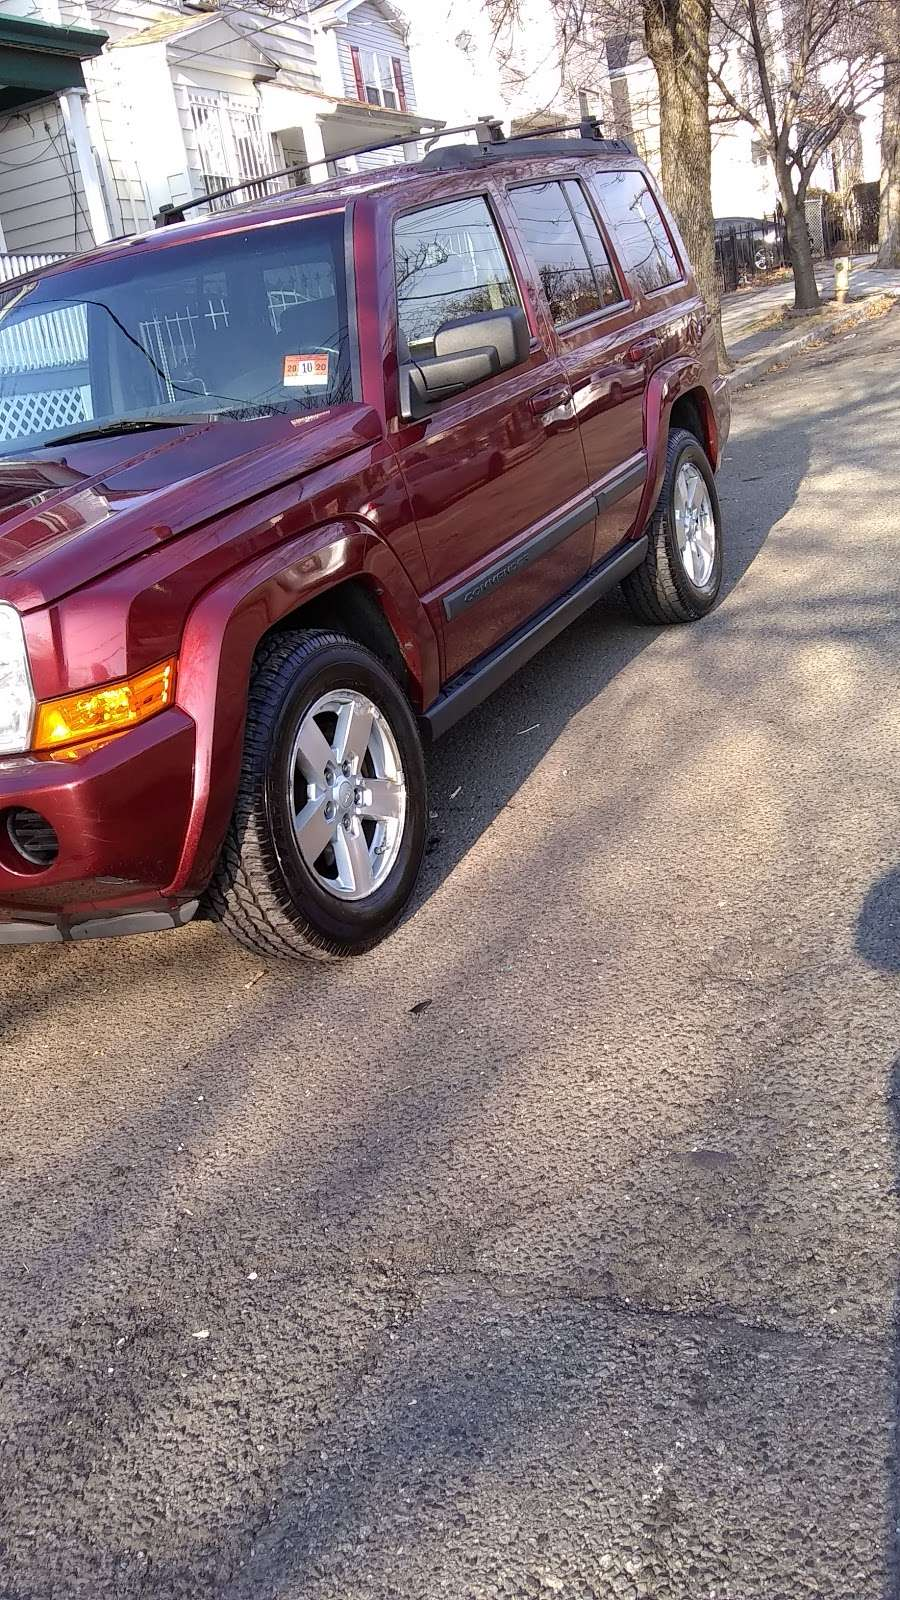 Z & U Hand Car Wash - car wash  | Photo 2 of 10 | Address: 844 Clinton Ave, Newark, NJ 07108, USA | Phone: (862) 240-1515